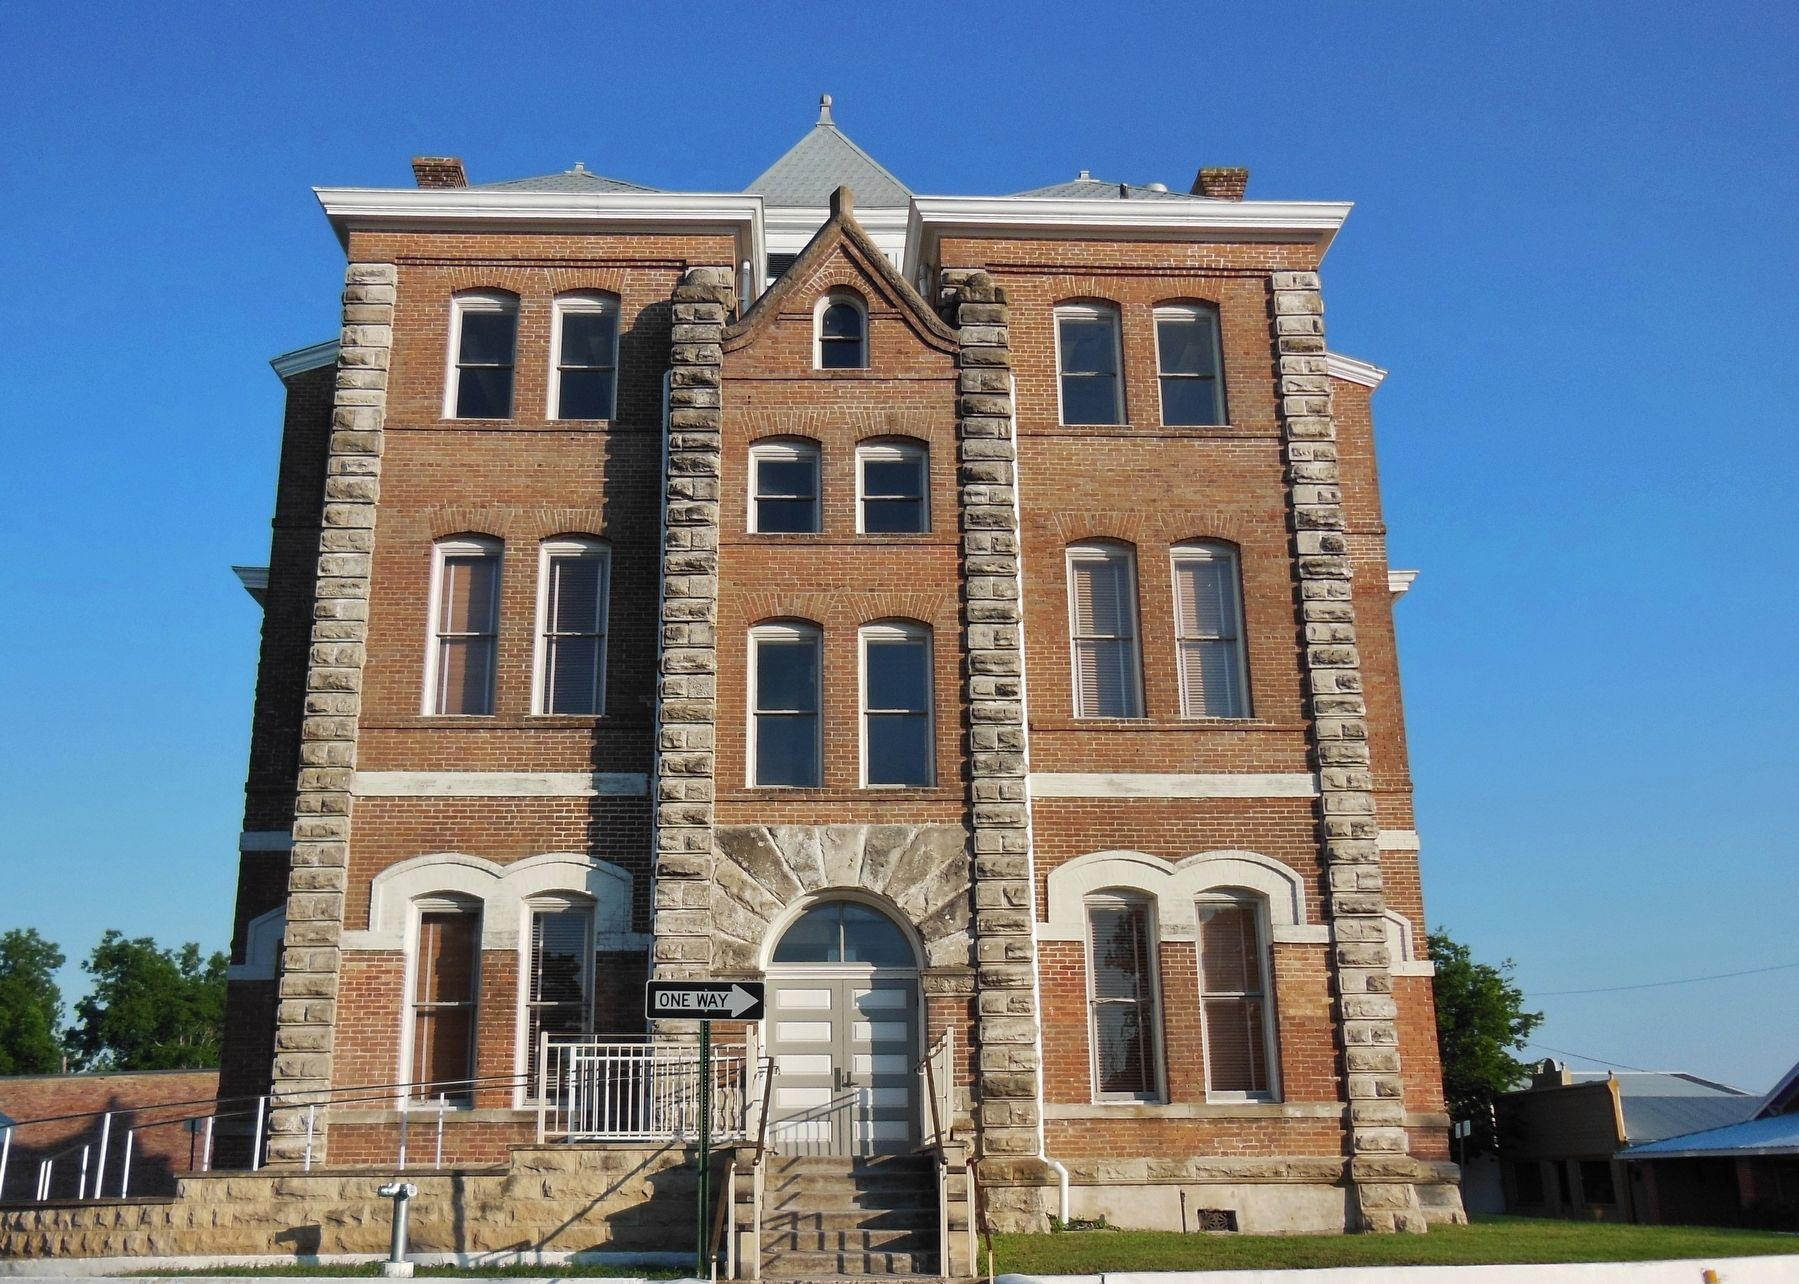 Grimes County Courthouse (<i>north side</i>) image. Click for full size.